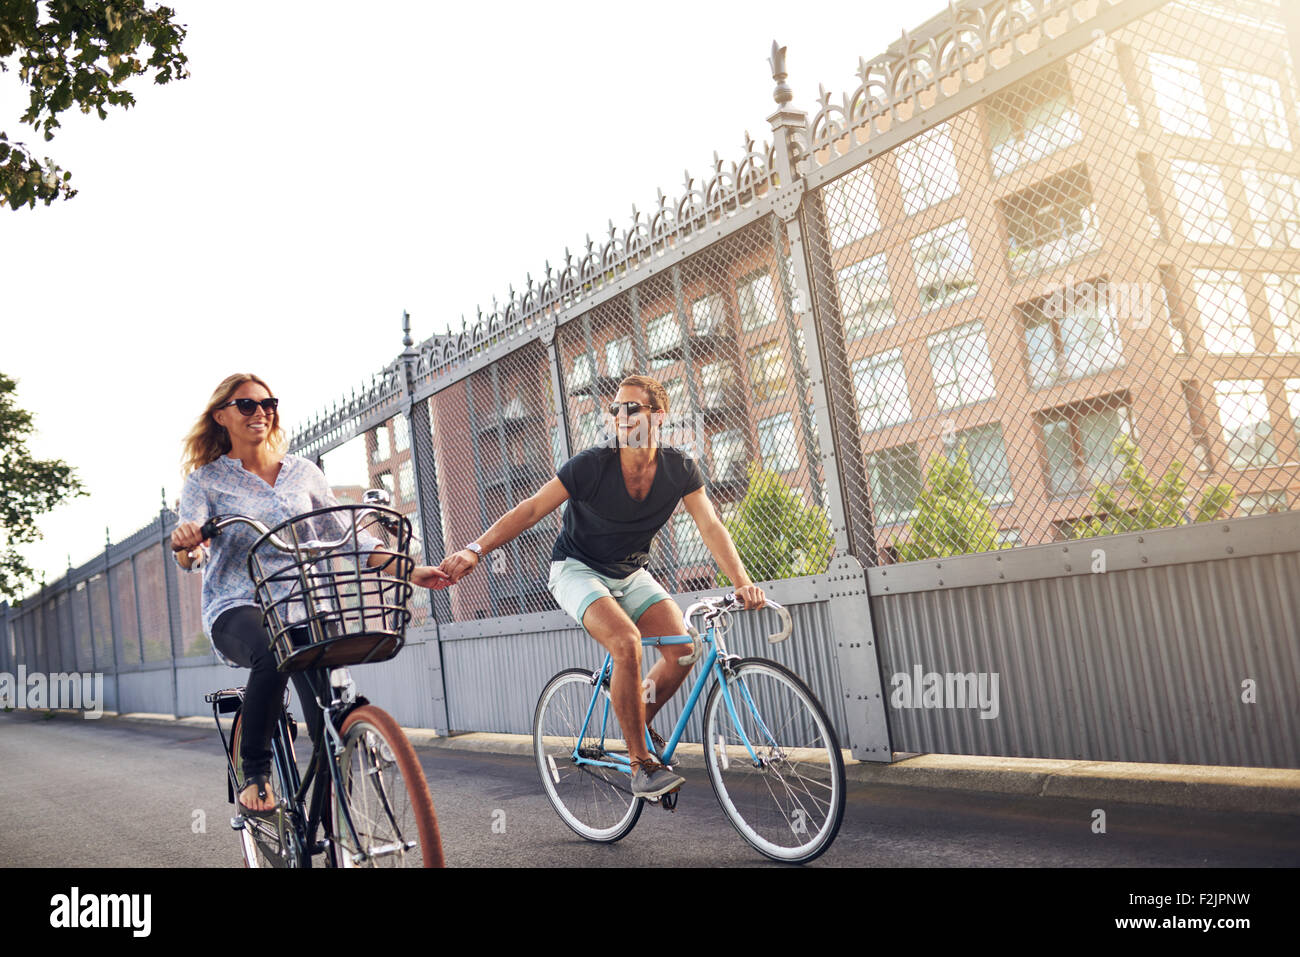 Romantic couple holding hands as they go cycling riding their bikes down an urban street past apartment blocks - Stock Image